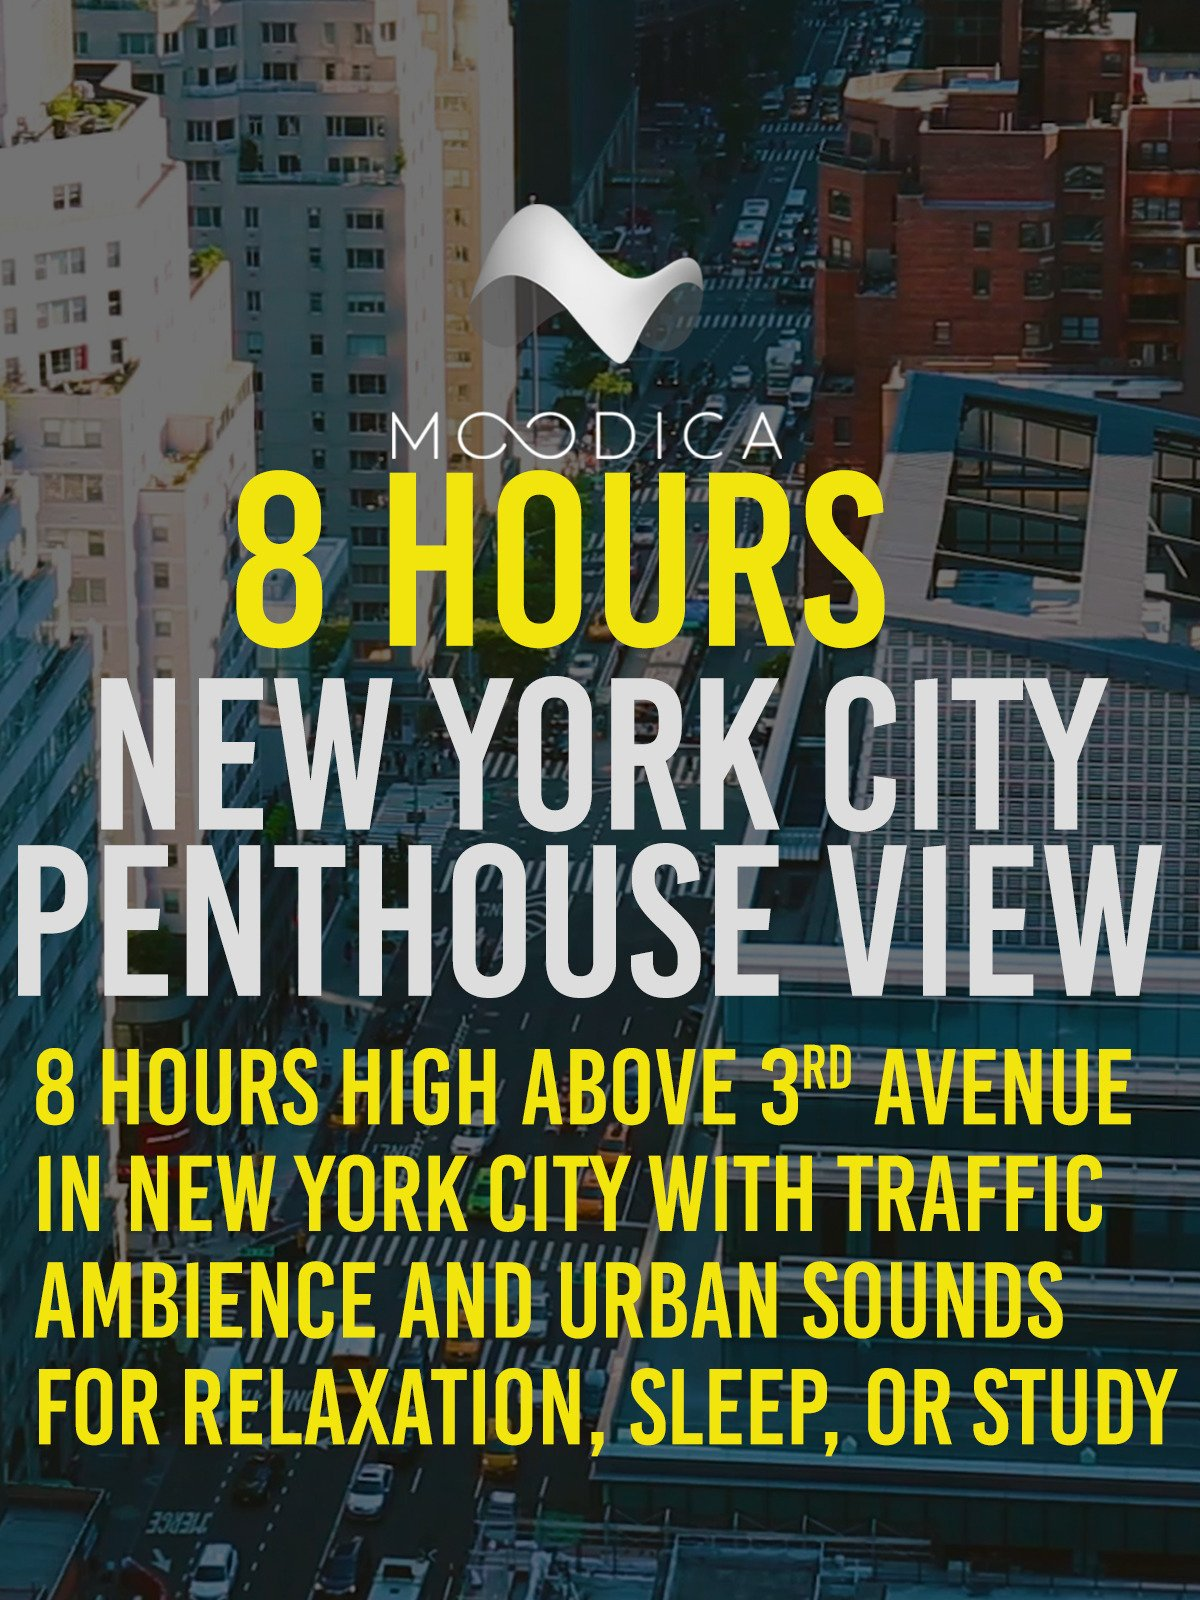 8 Hours: New York City Penthouse View: 8 Hours High Above 3rd Avenue in New York City with Traffic Ambience and Urban Sounds for Relaxation, Sleep, or Study